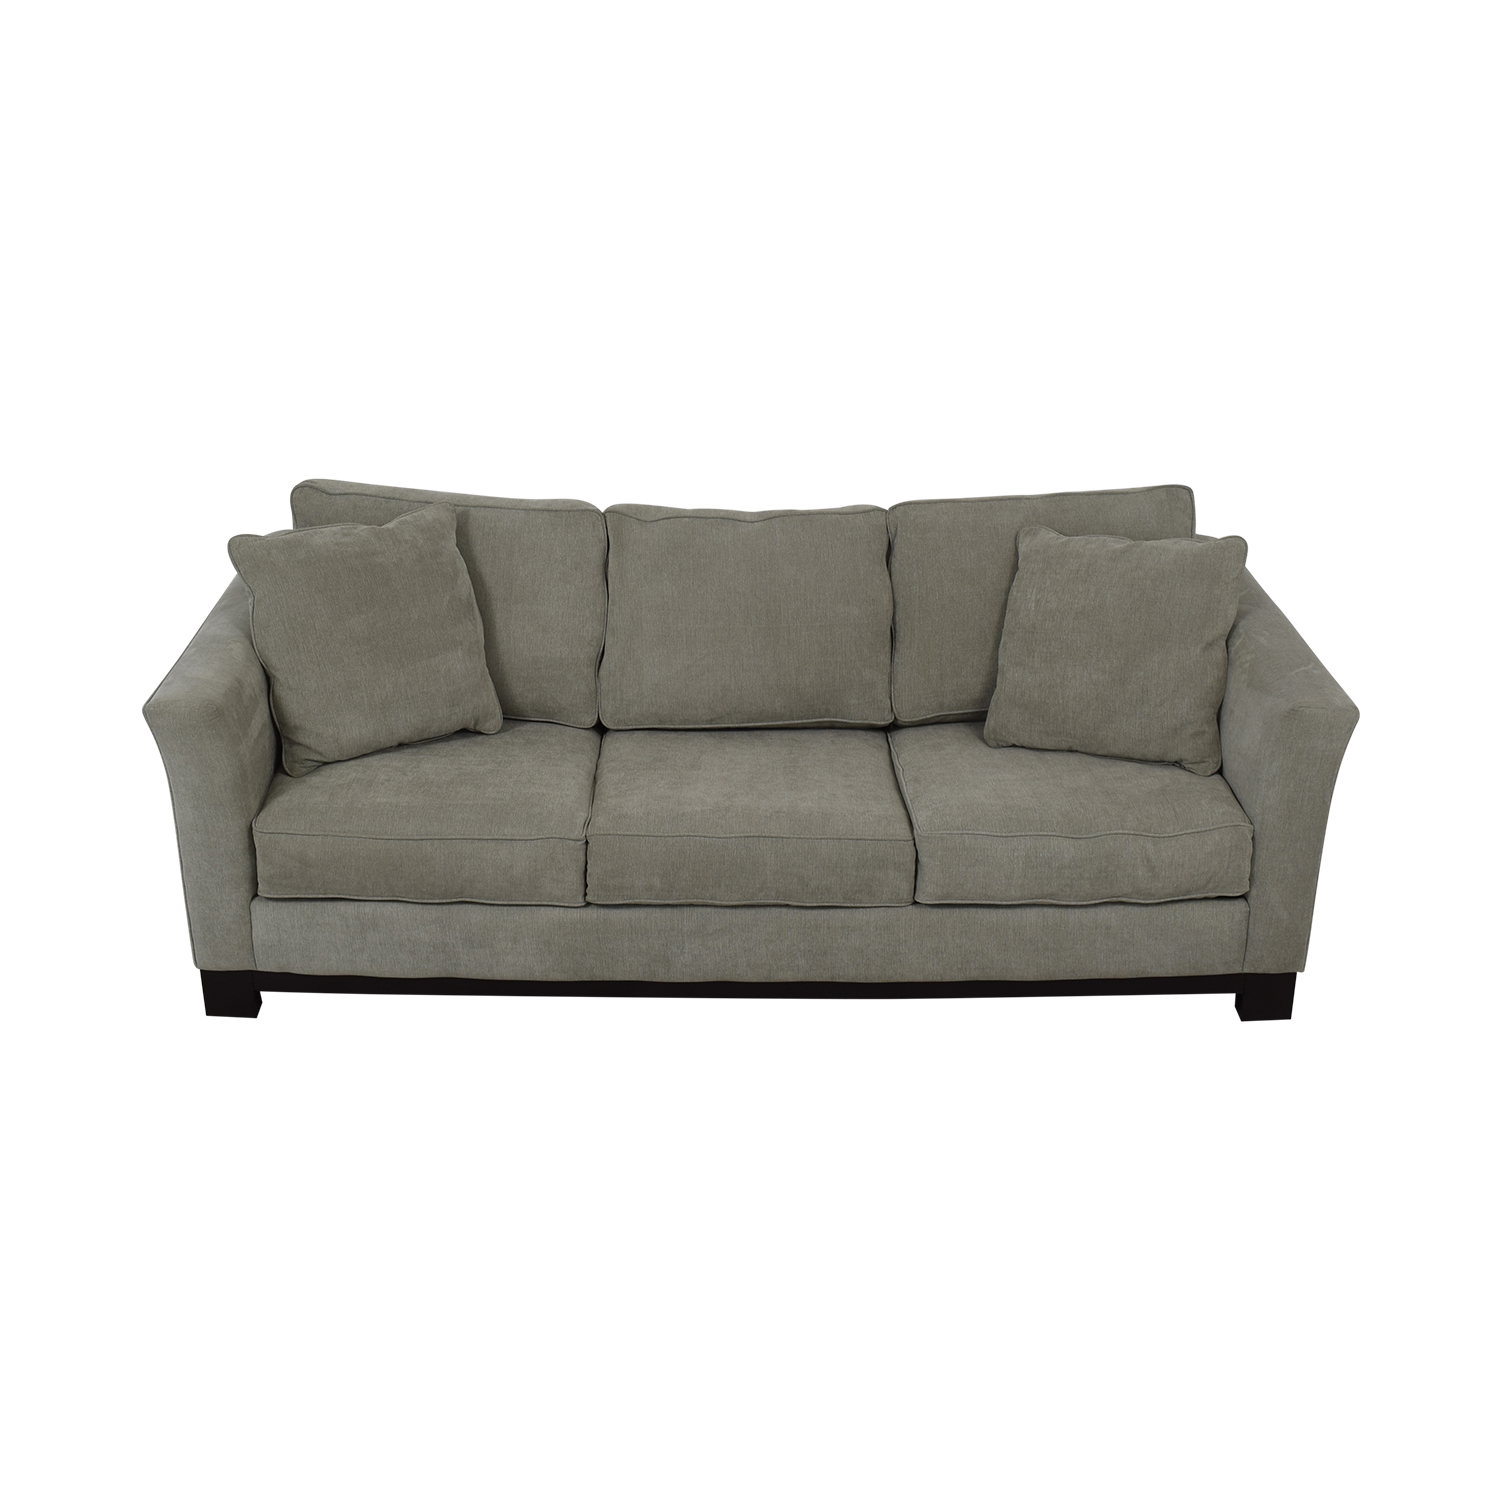 Buy Sofa Online 67 Off Macy S Macy S Queen Sleeper Sofa Sofas